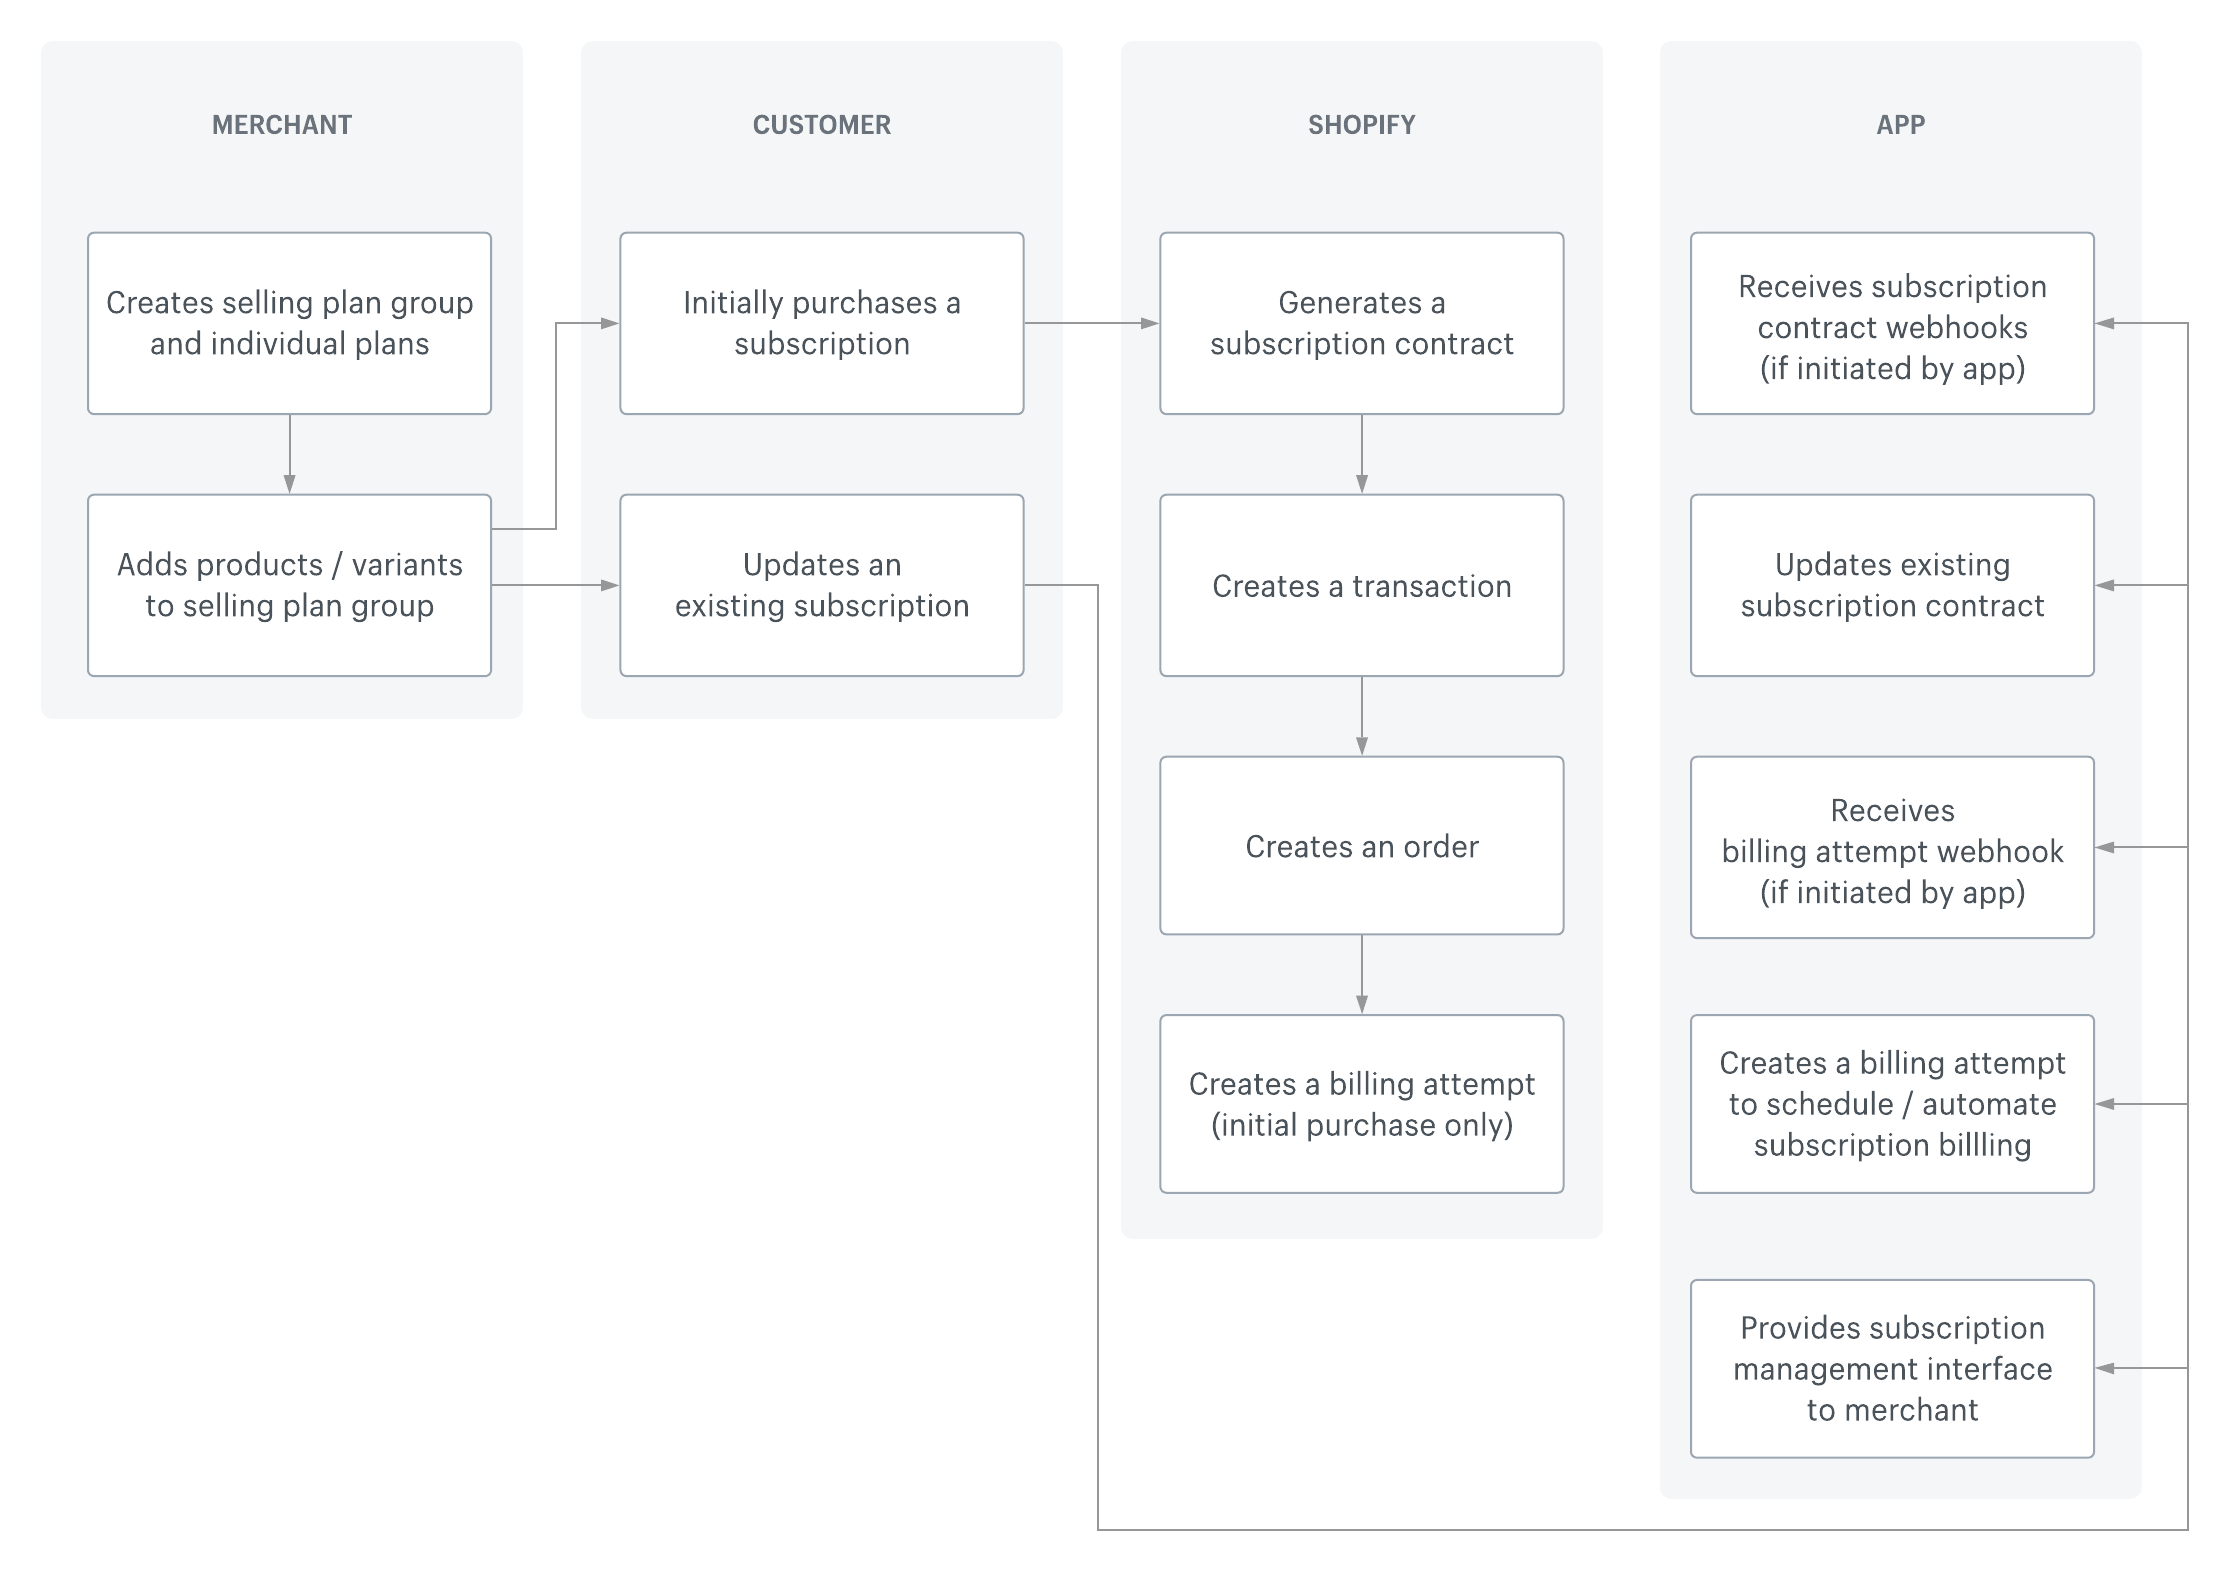 Subscriptions lifecycle diagram